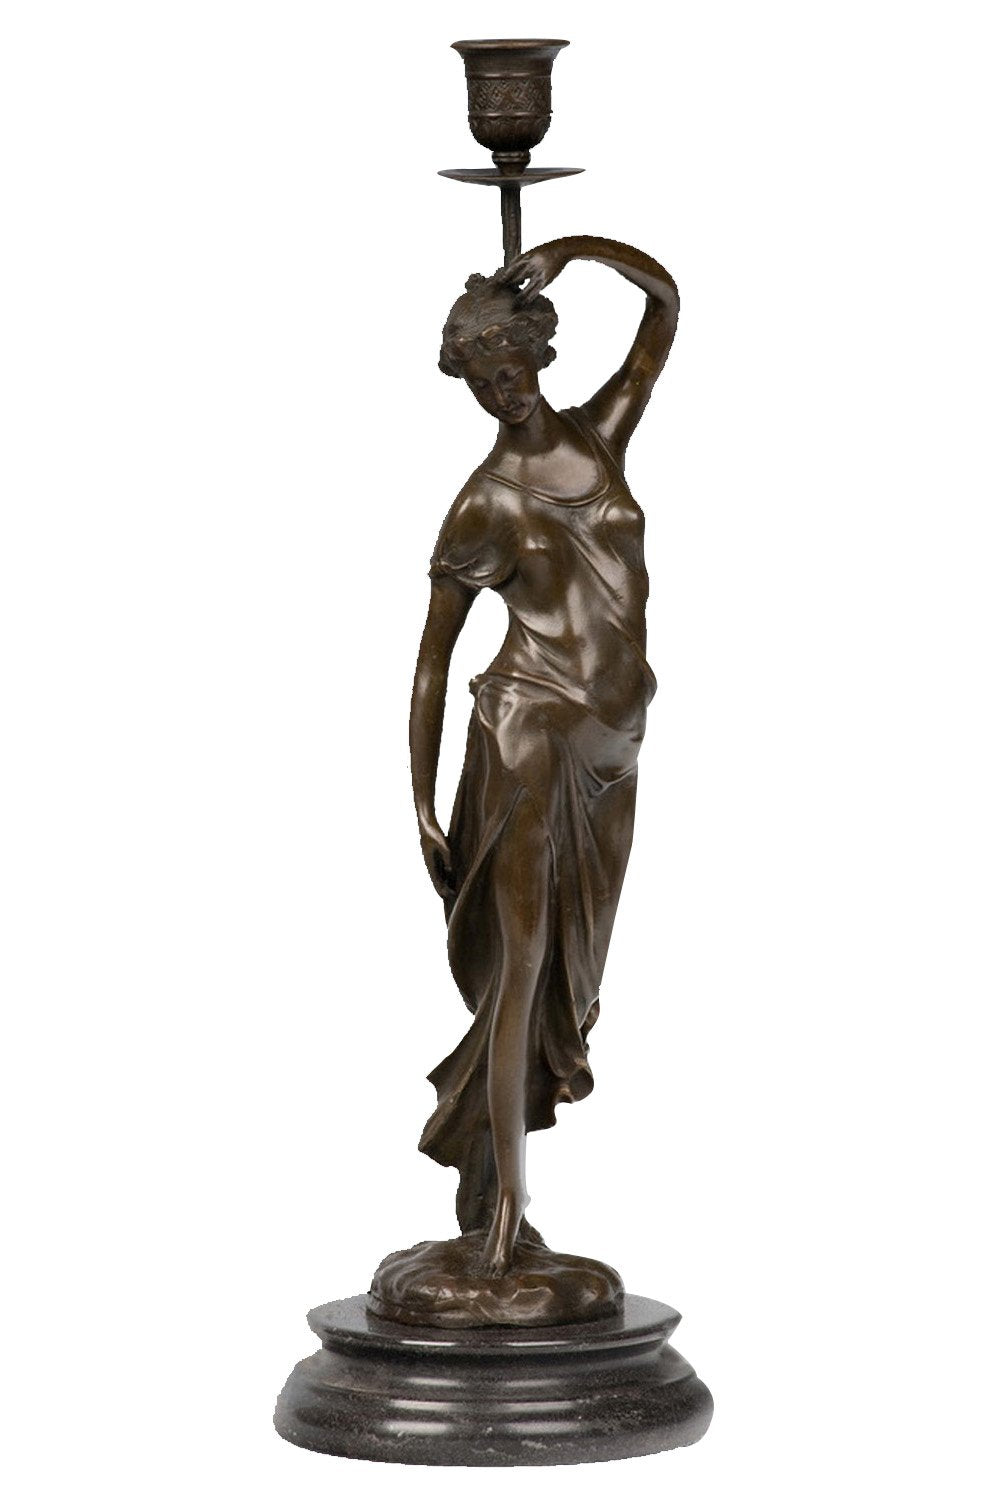 TPY-399BP bronze sculpture